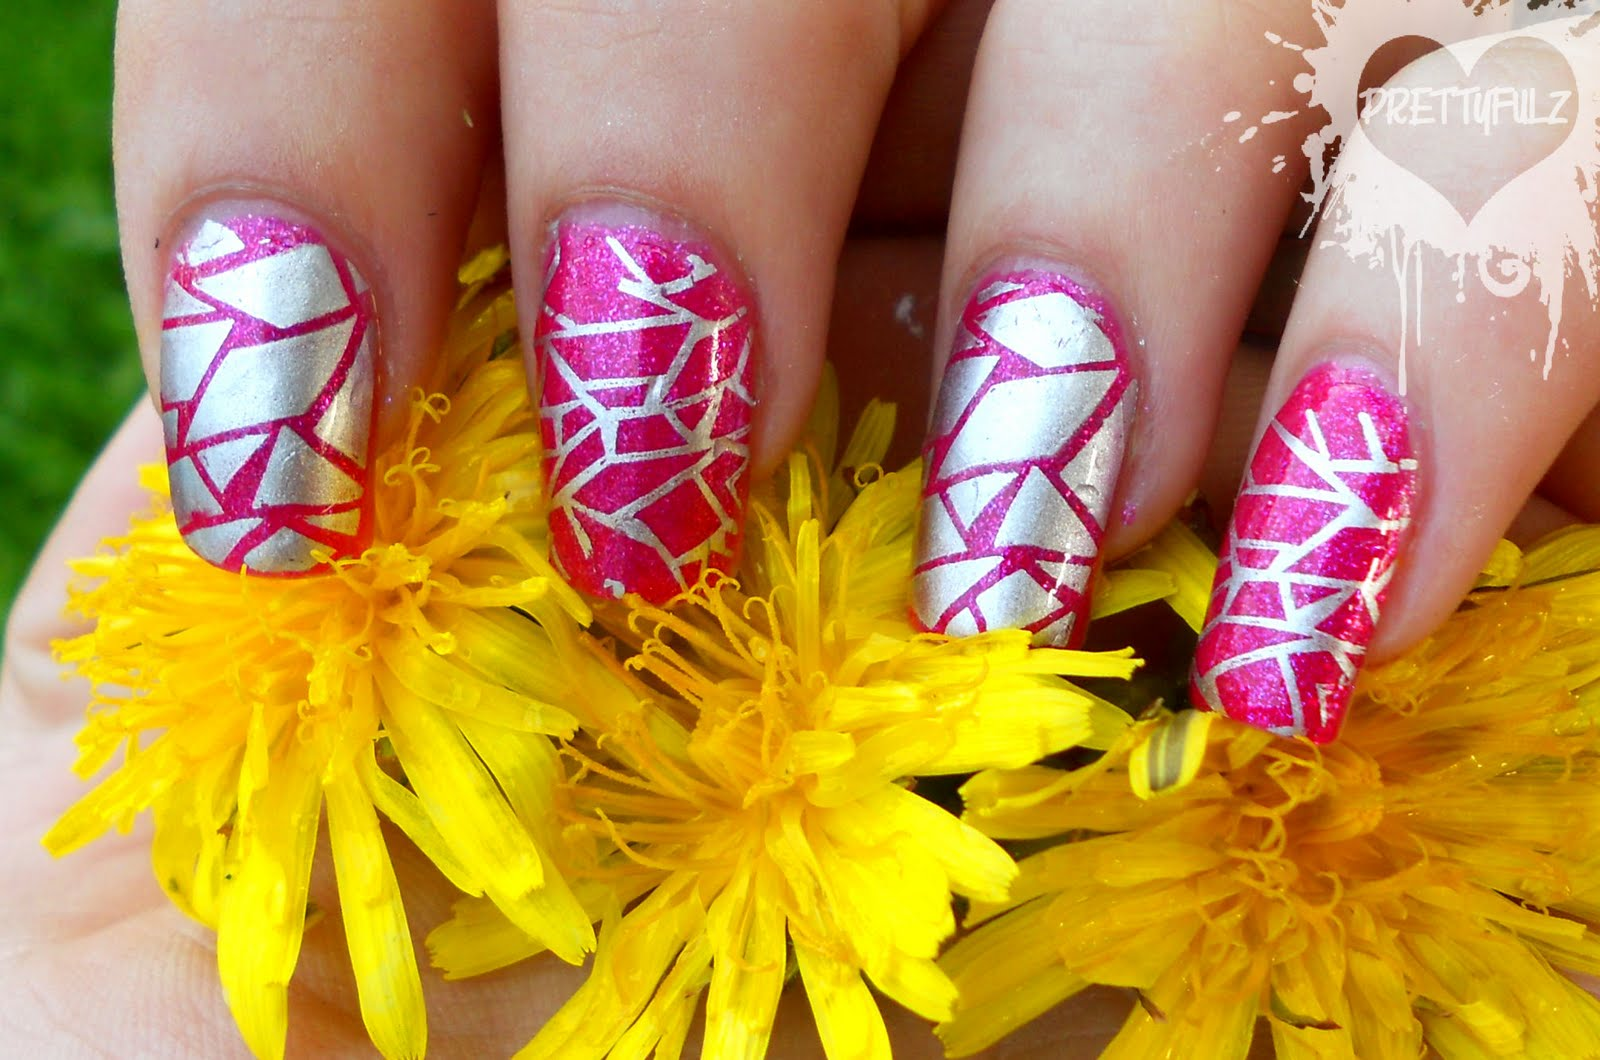 Pink And Silver Nail Designs Nail Designs Hair Styles Tattoos